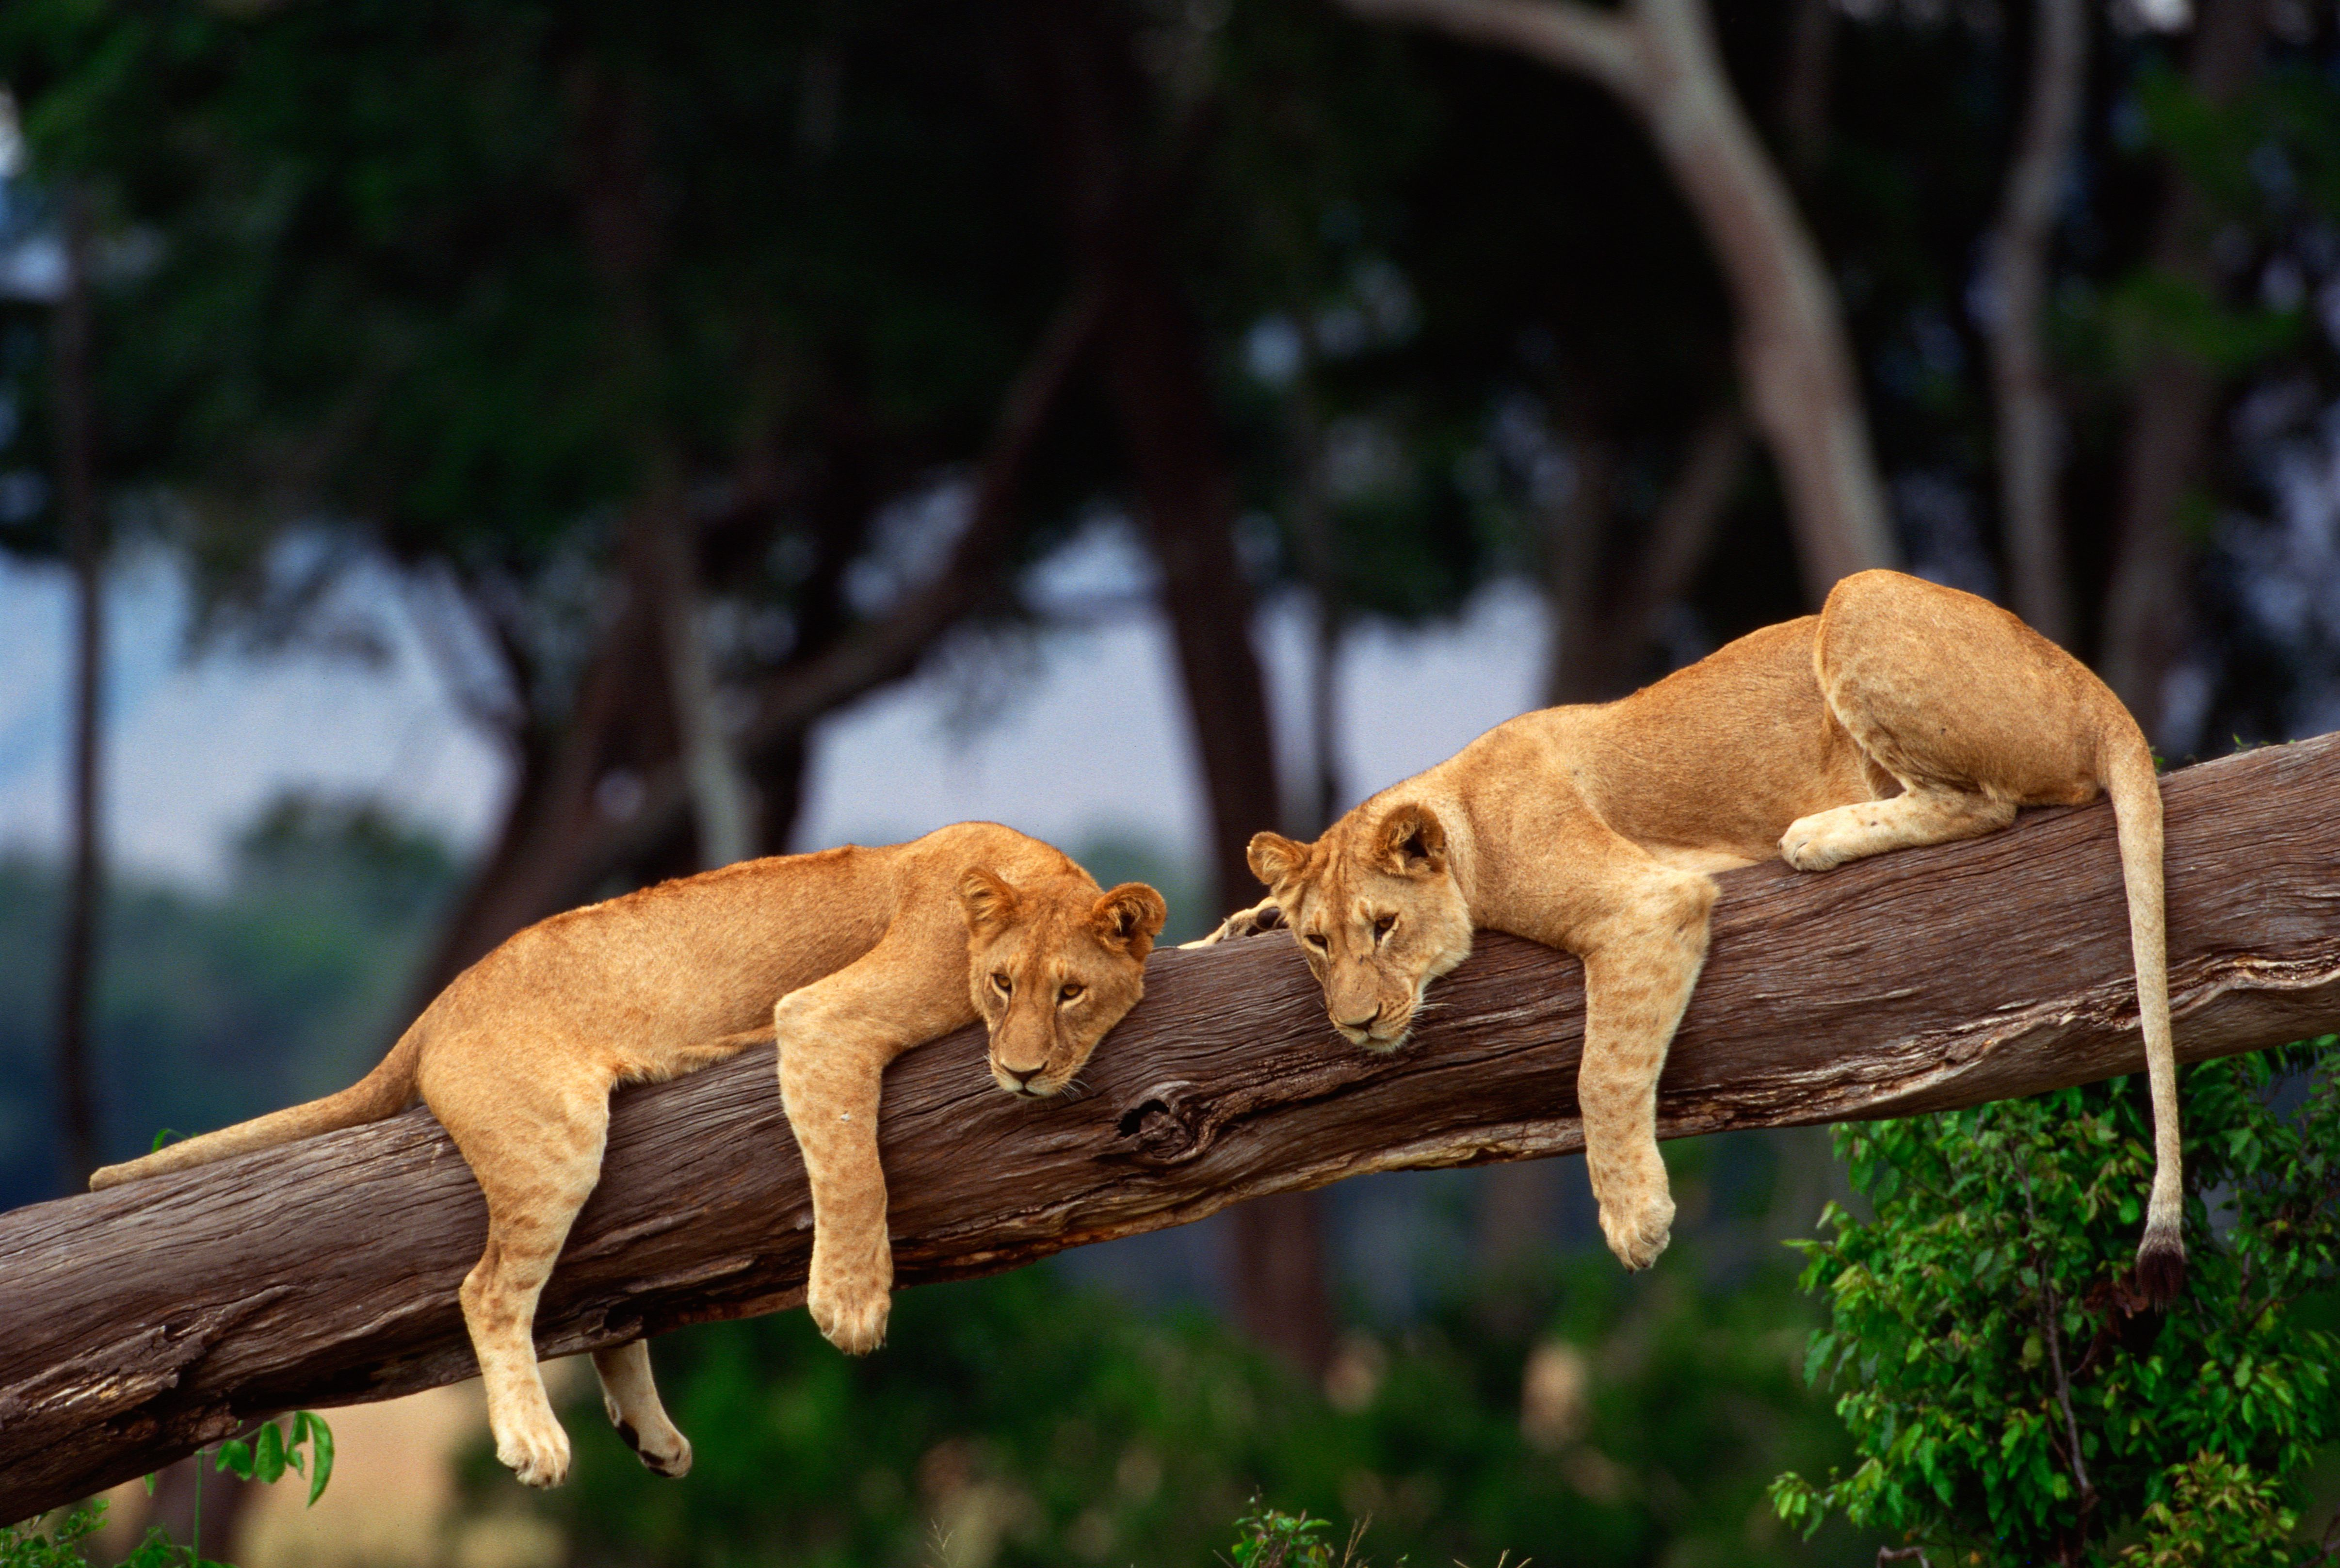 Two lionesses sitting on a tree branch.